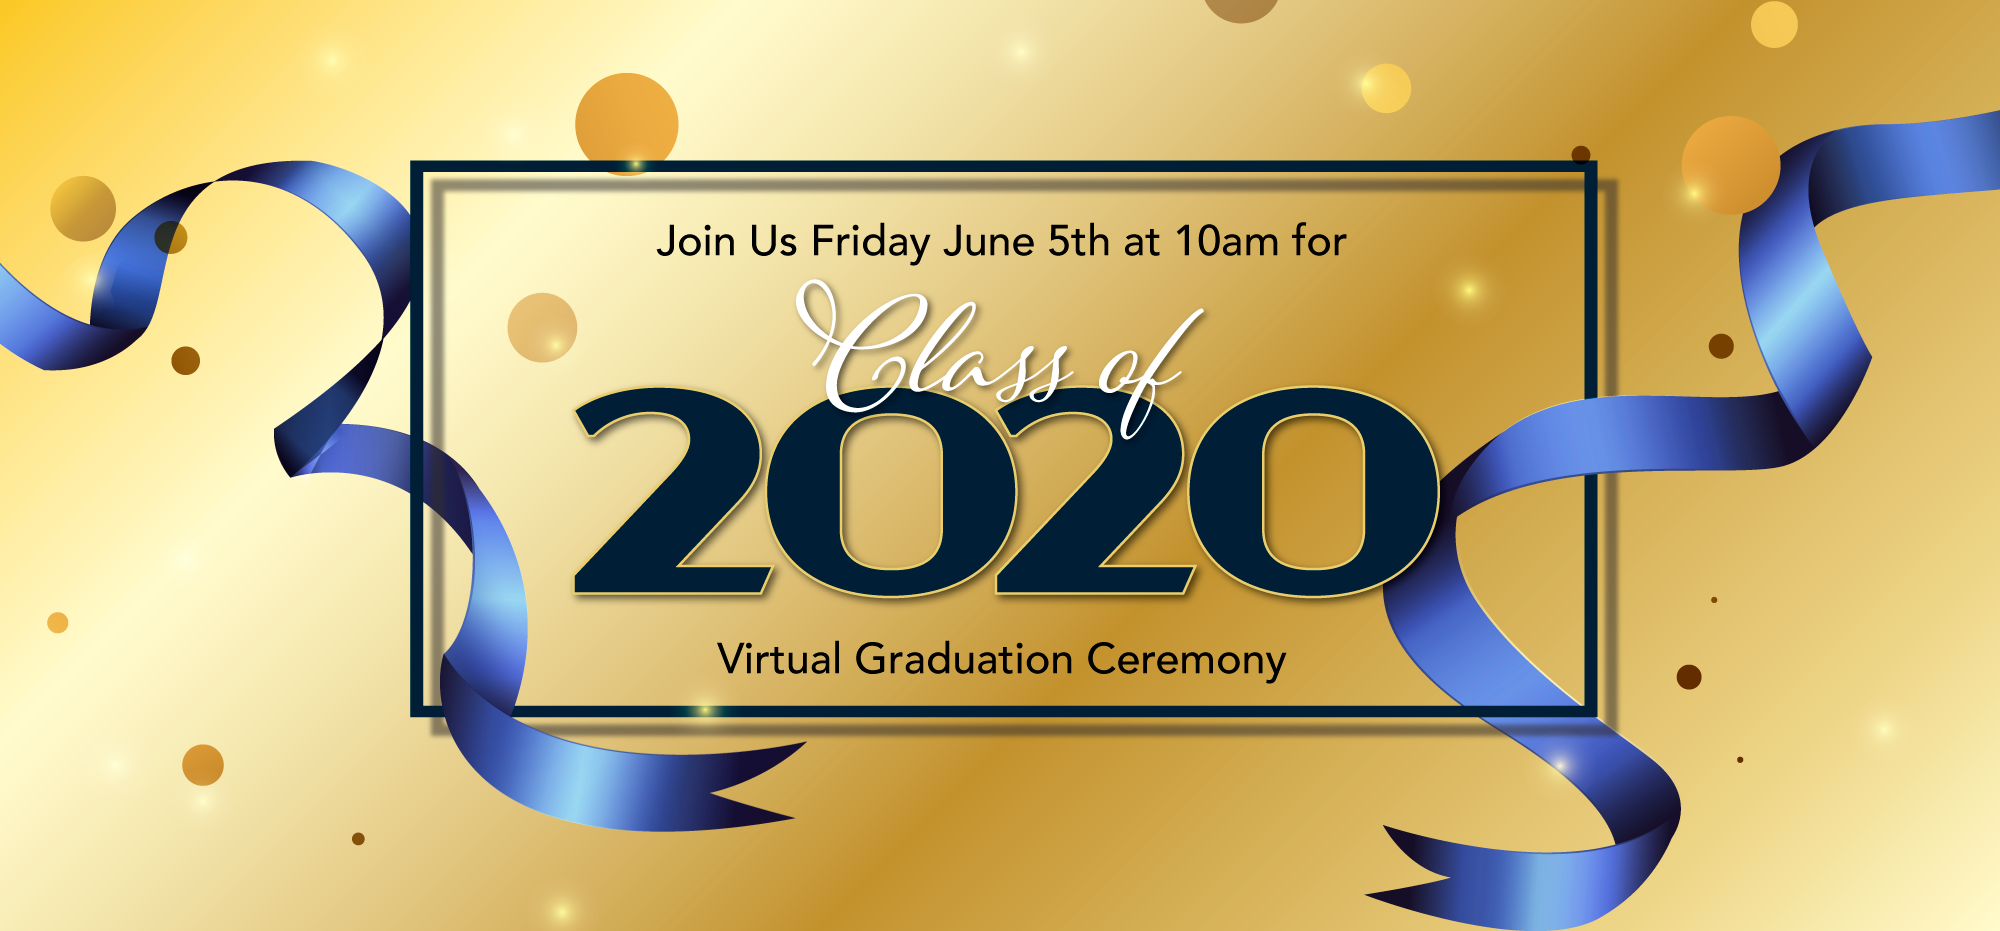 2020 Virtual Graduation Ceremony